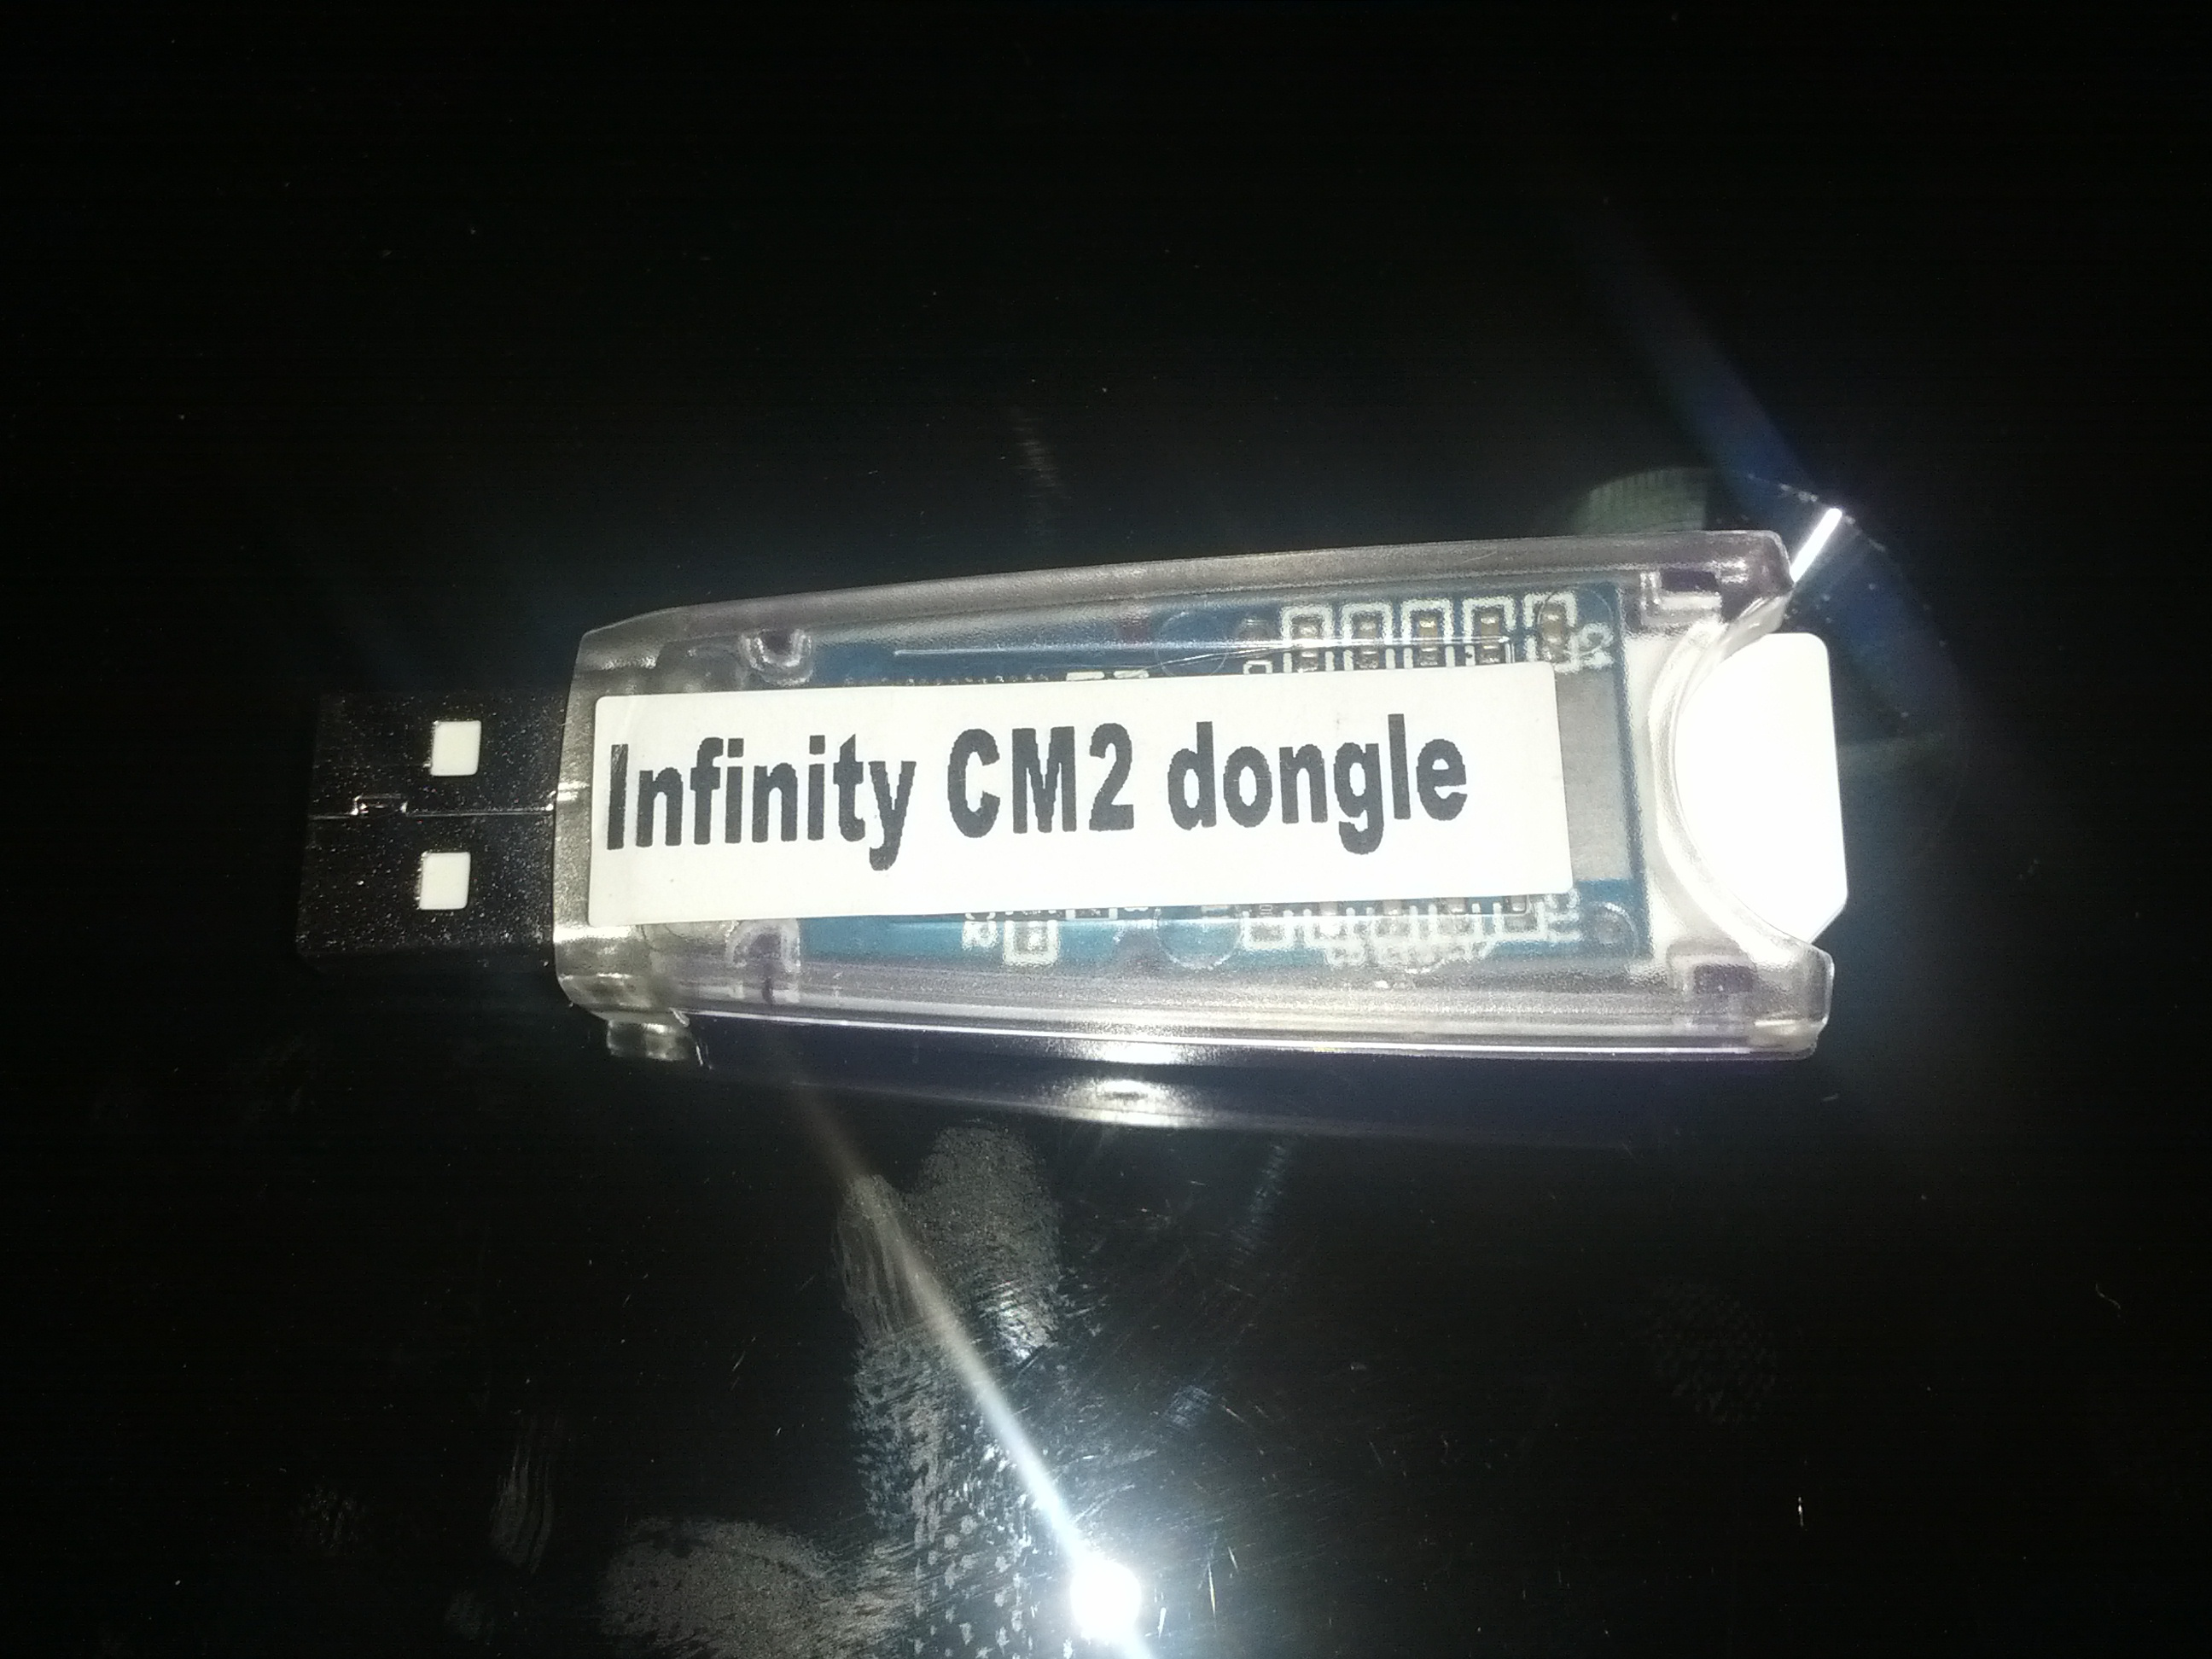 infinity dongle-dongle manager no me reconoce smart card ni me permite registrar E97